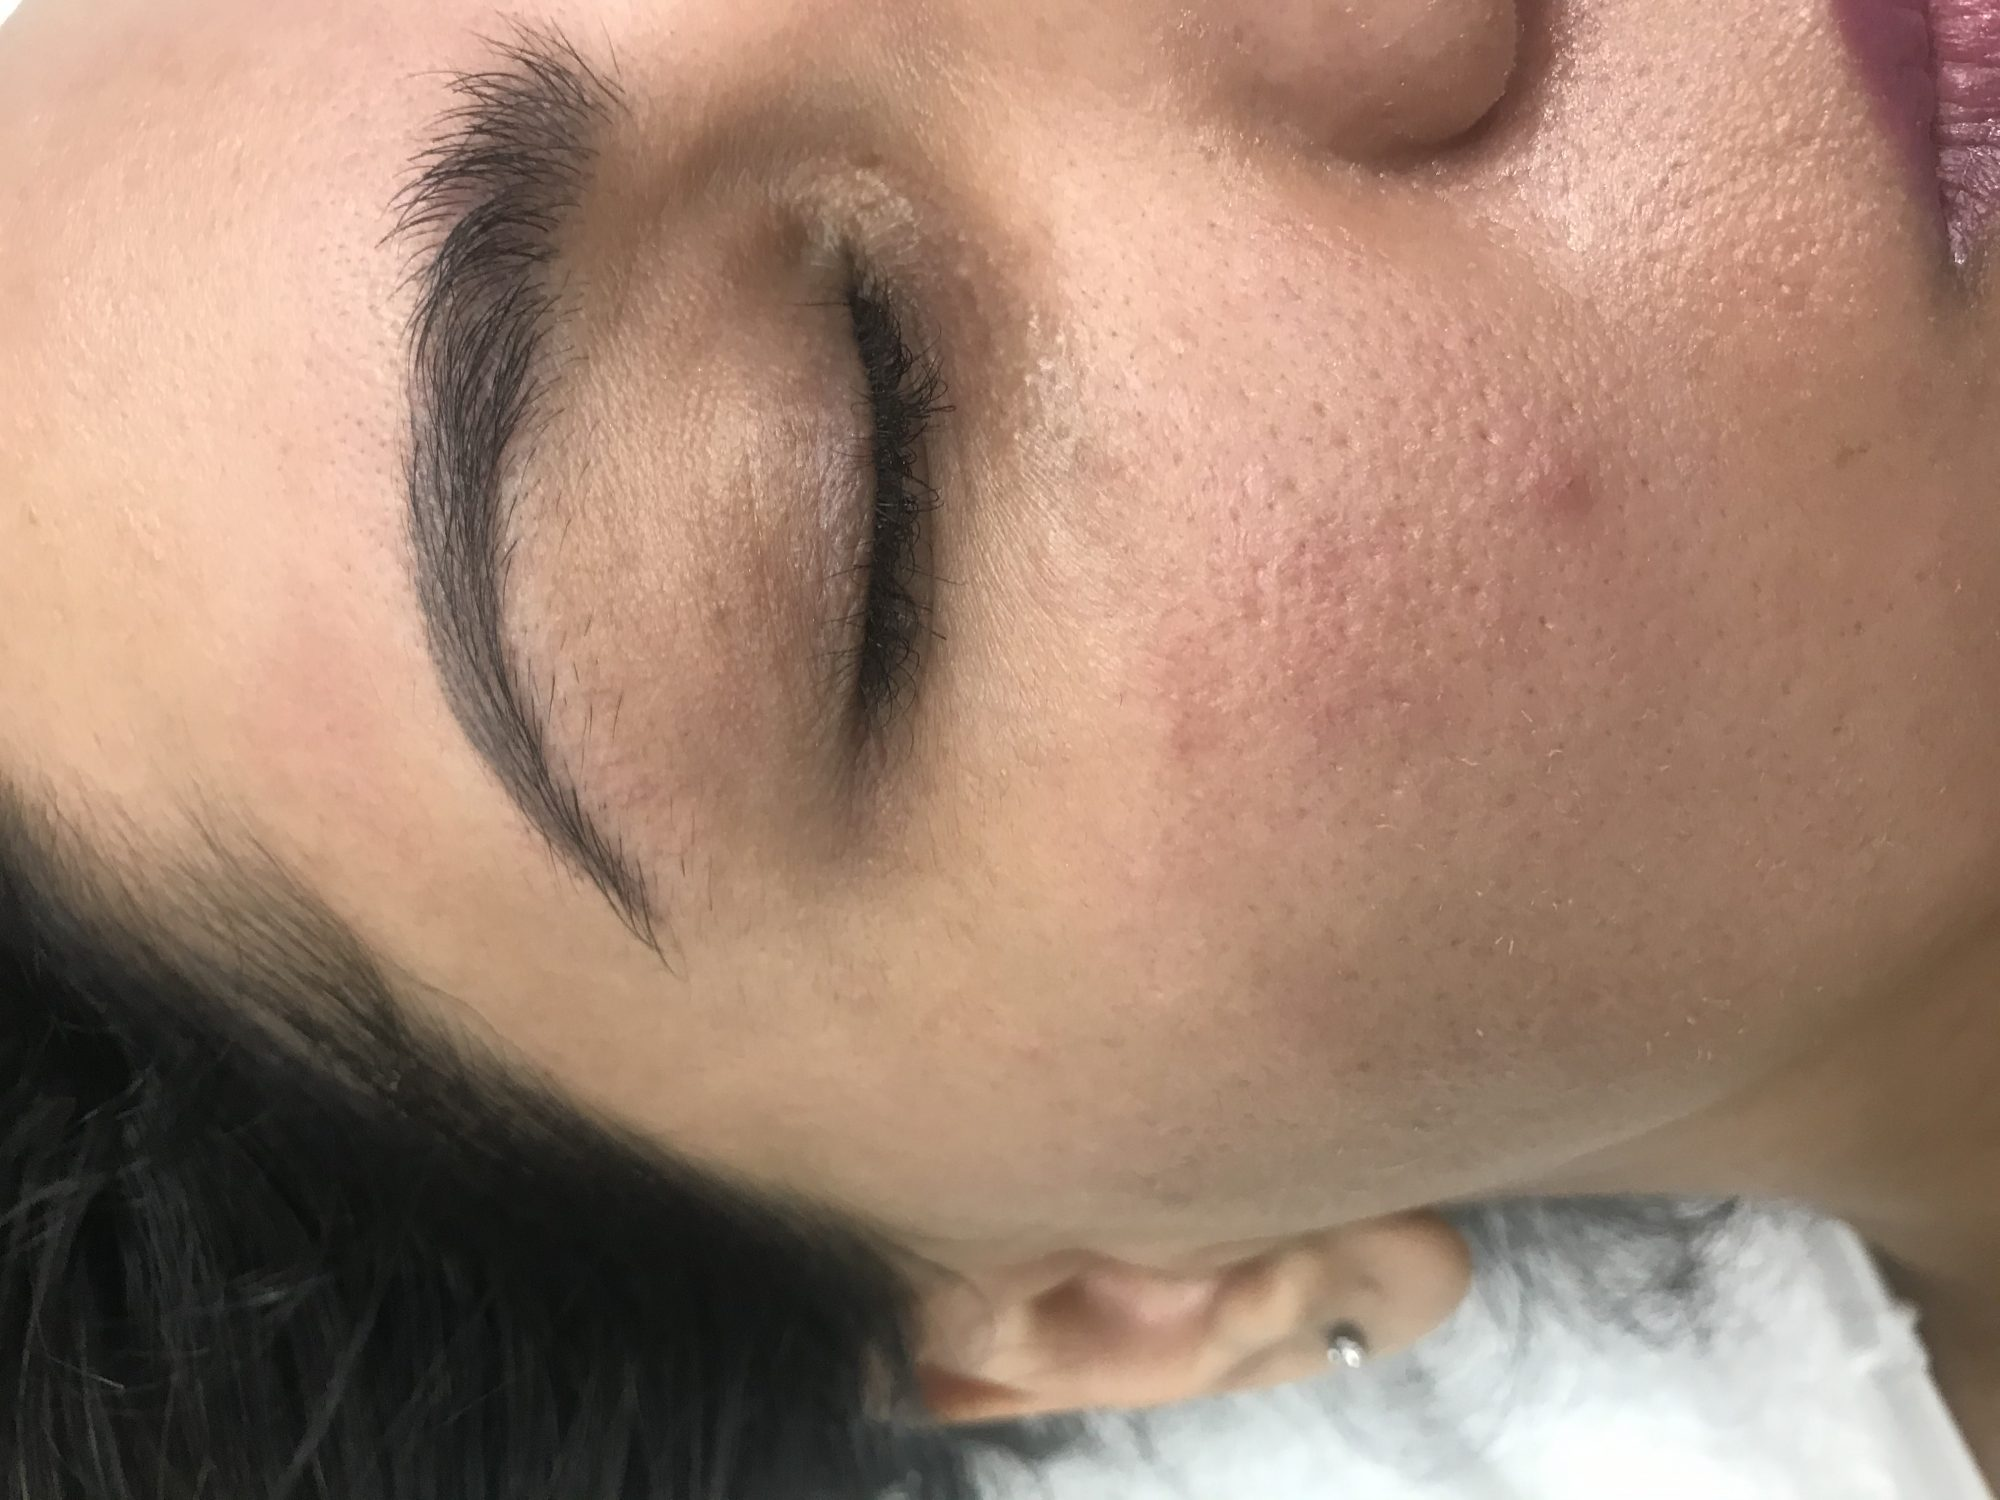 Dark circles - improve your circulation under eyes- Carboxy helps a lot! 2